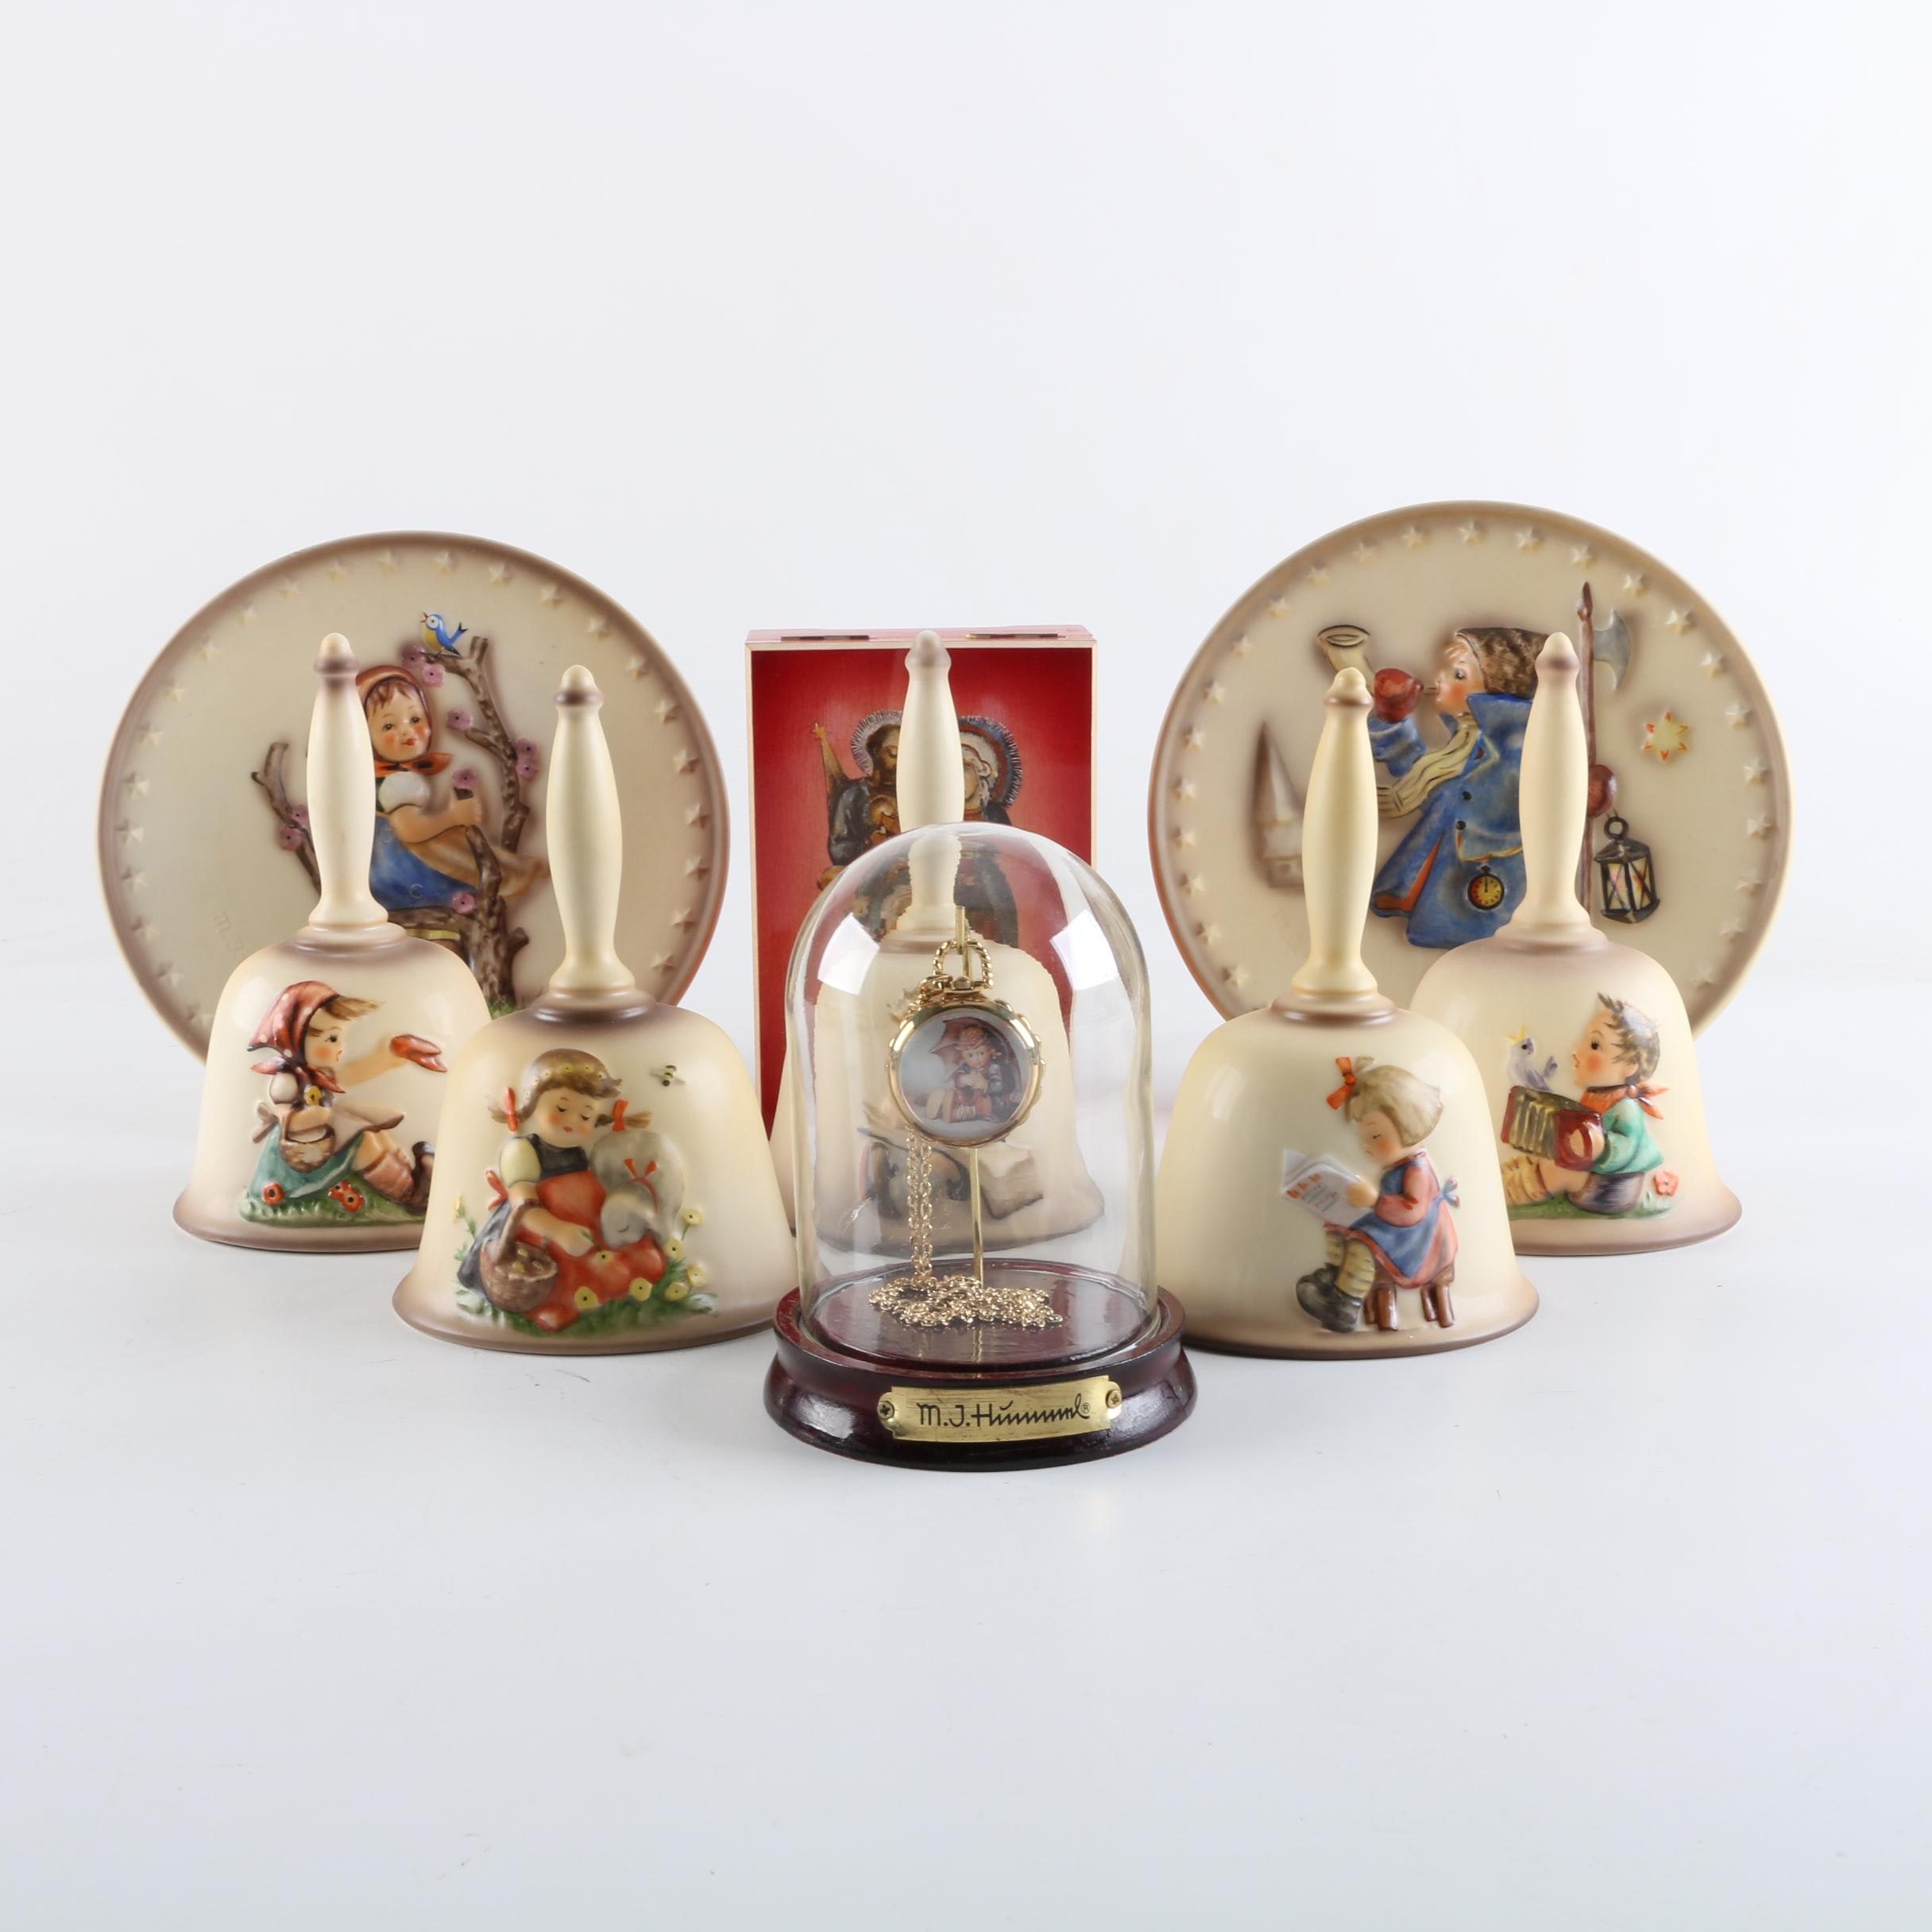 Collection of Hummel Plates, Bells, Music Box, and Hanging Watch in Glass Case